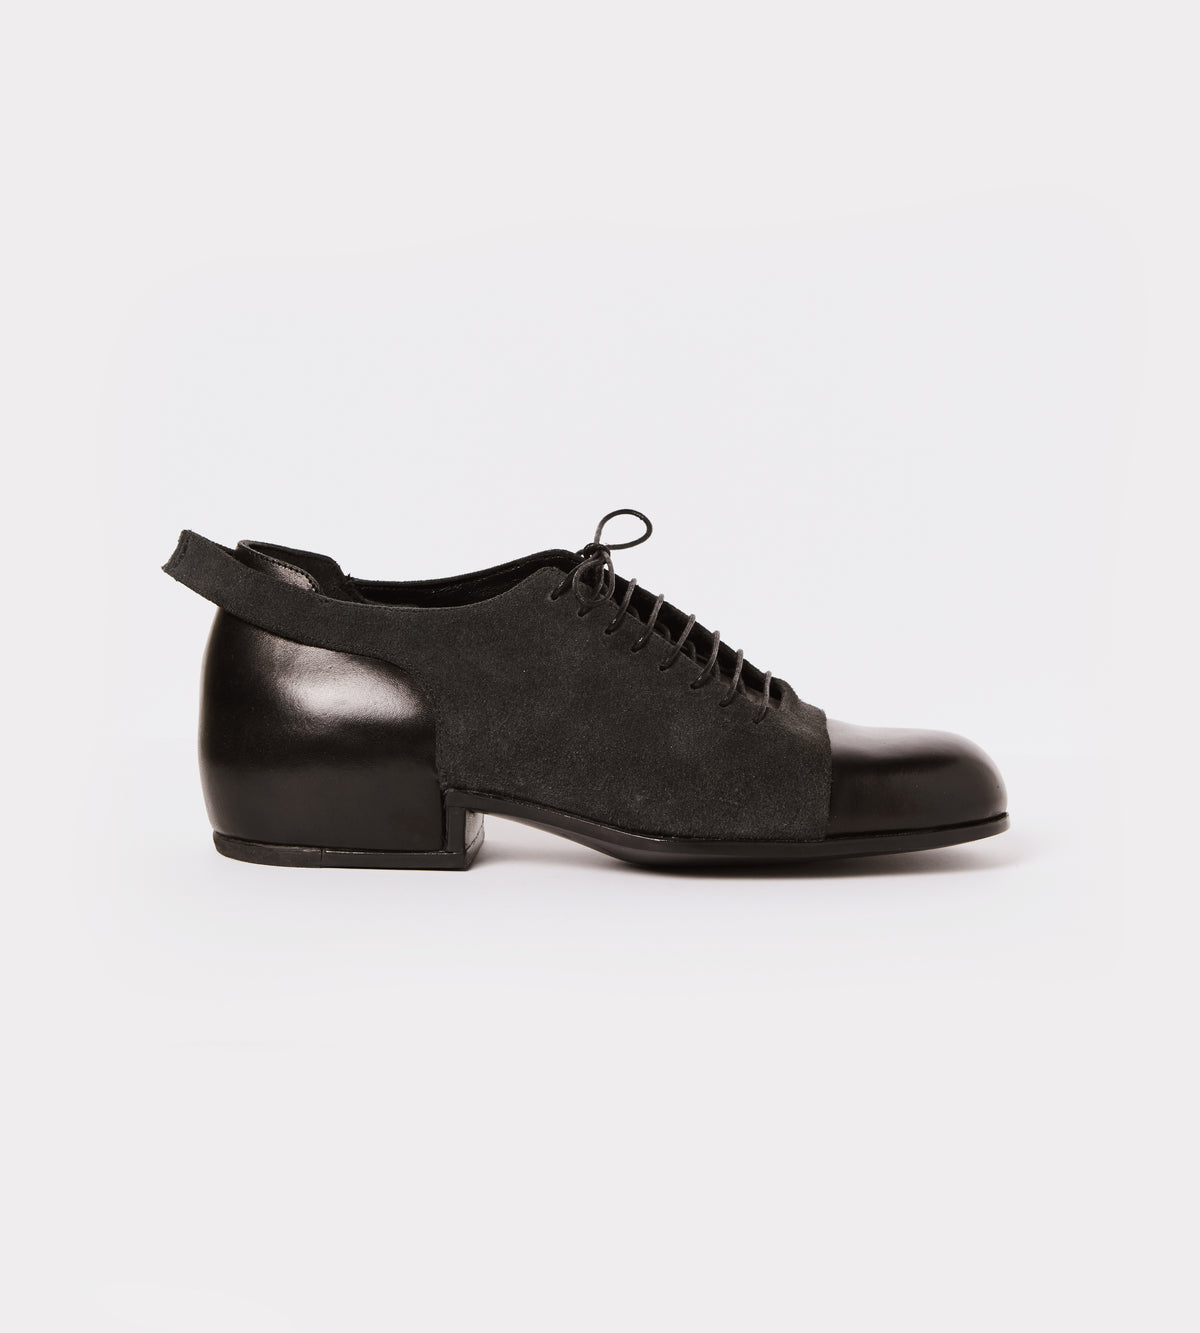 Black leather-suede lace up shoe outside view